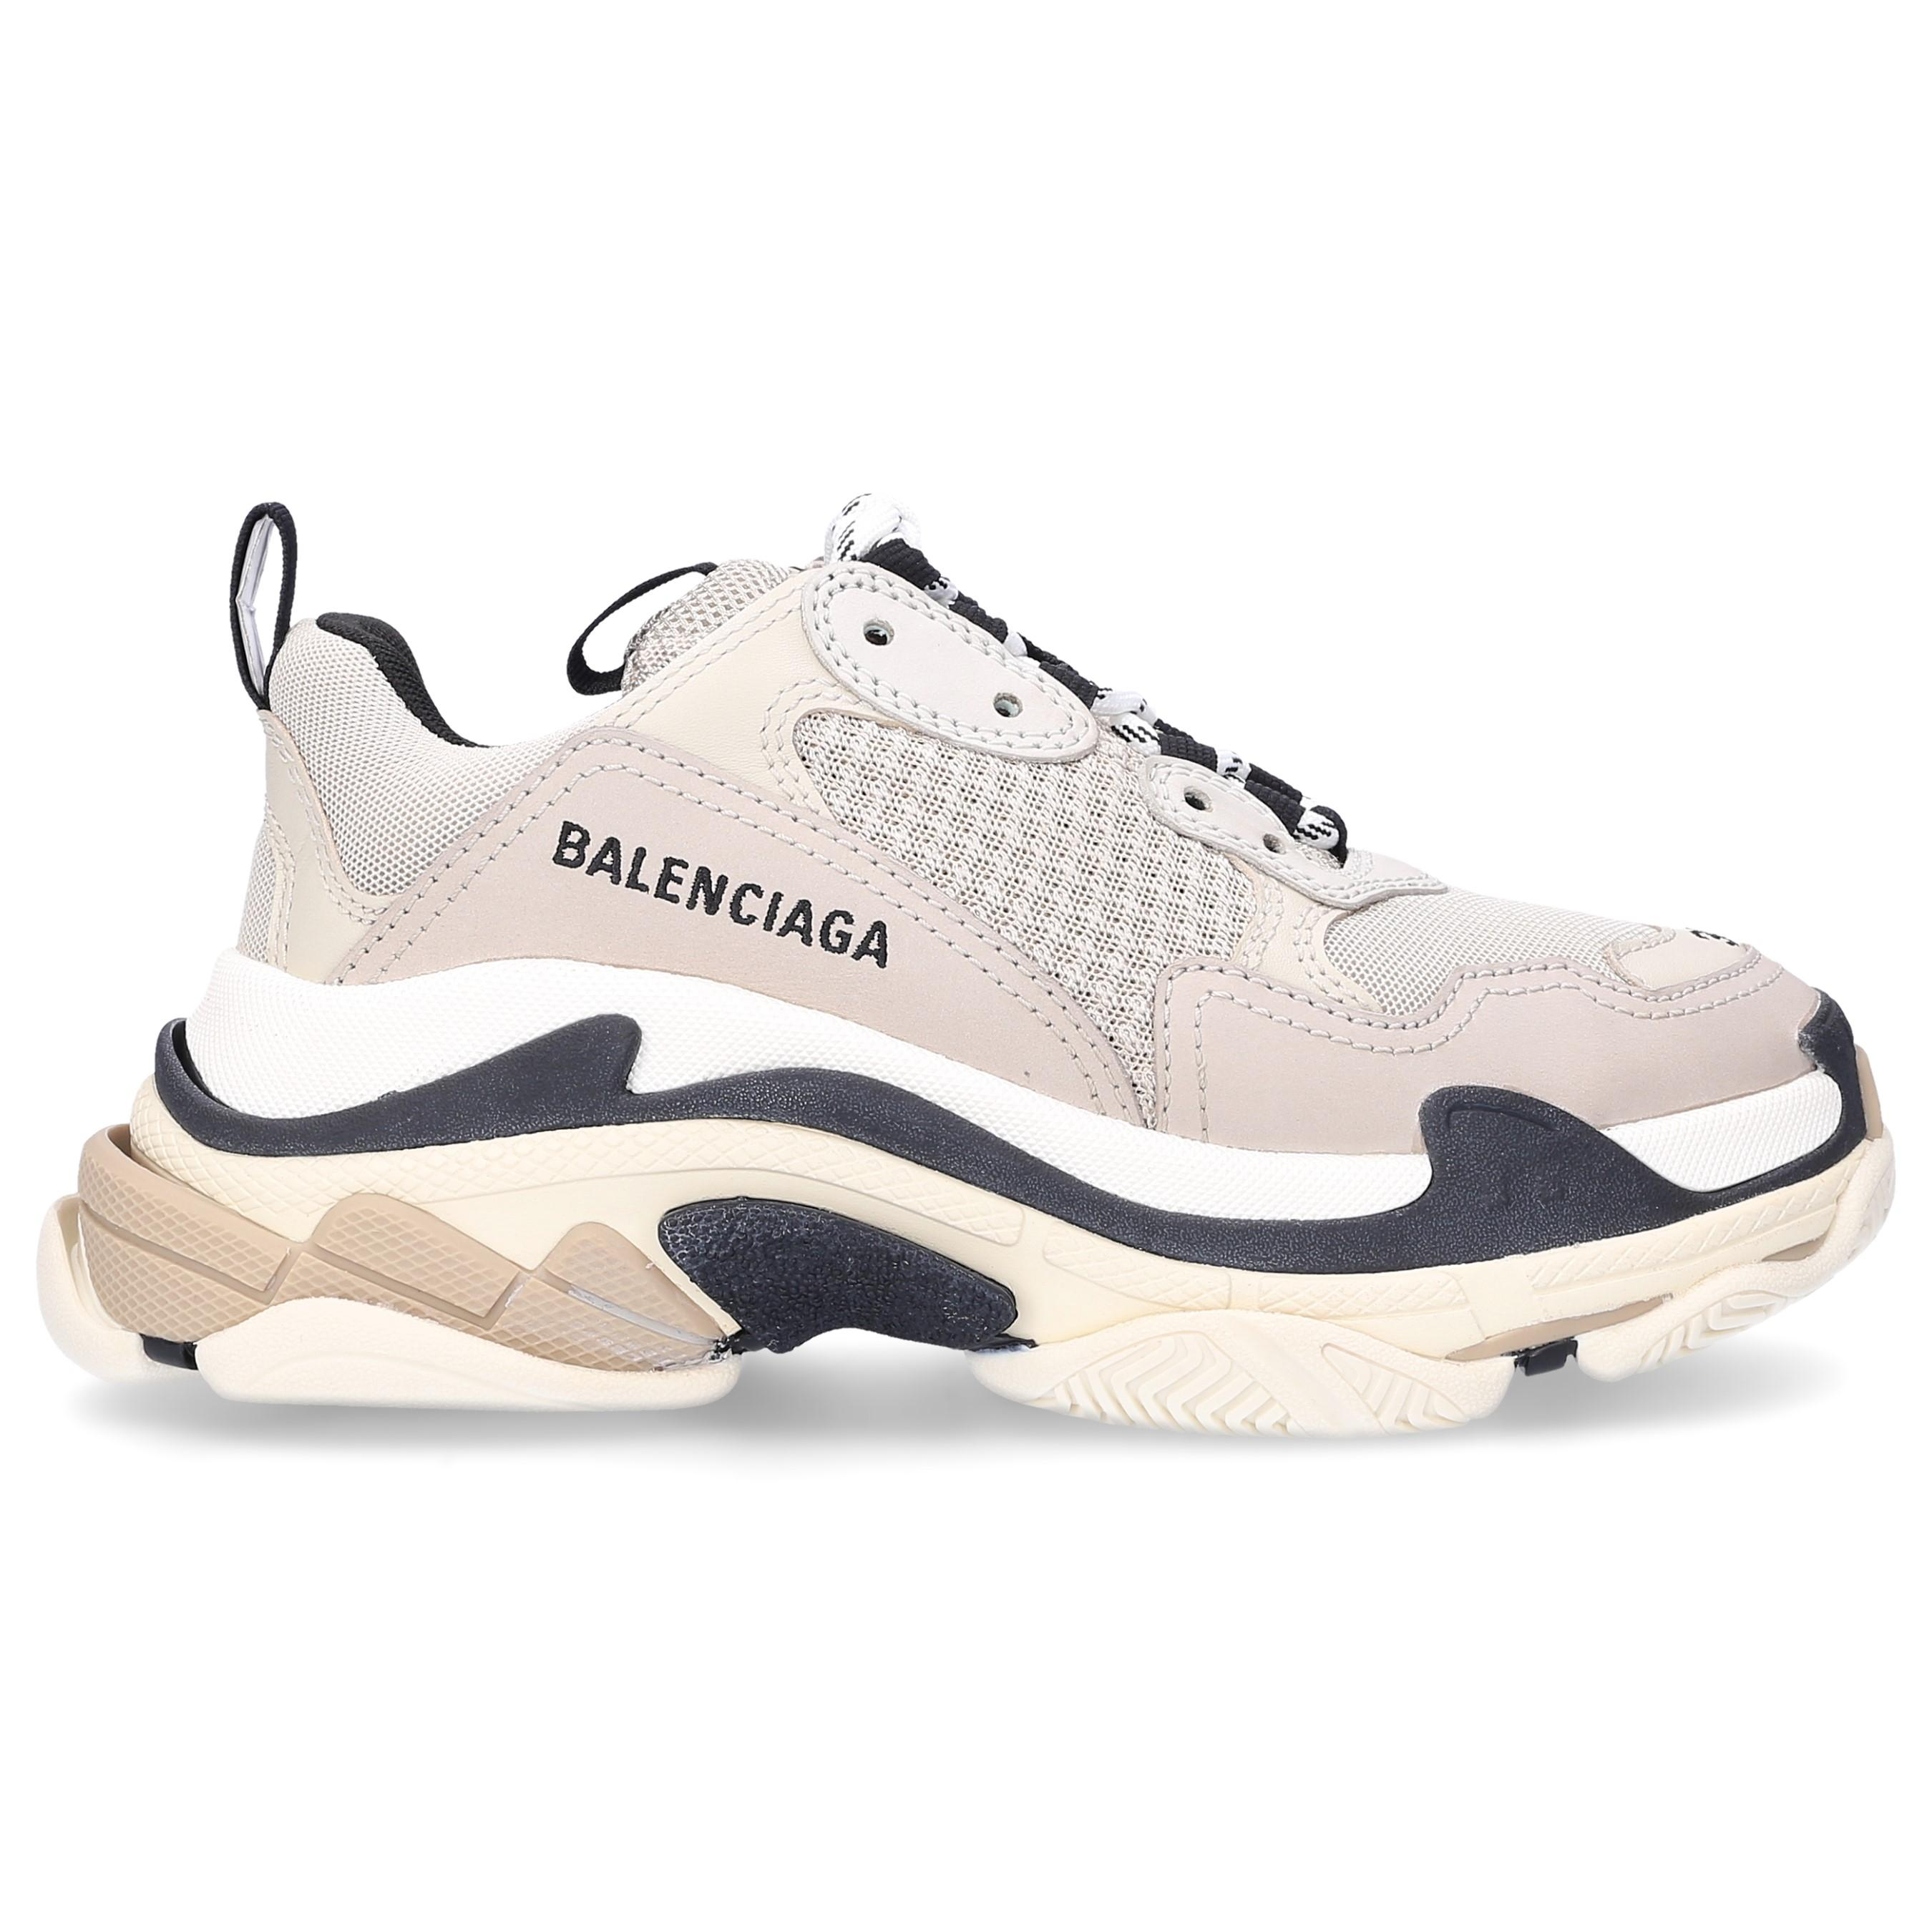 Lyst - Balenciaga Race Runner Fabric, Leather And Suede